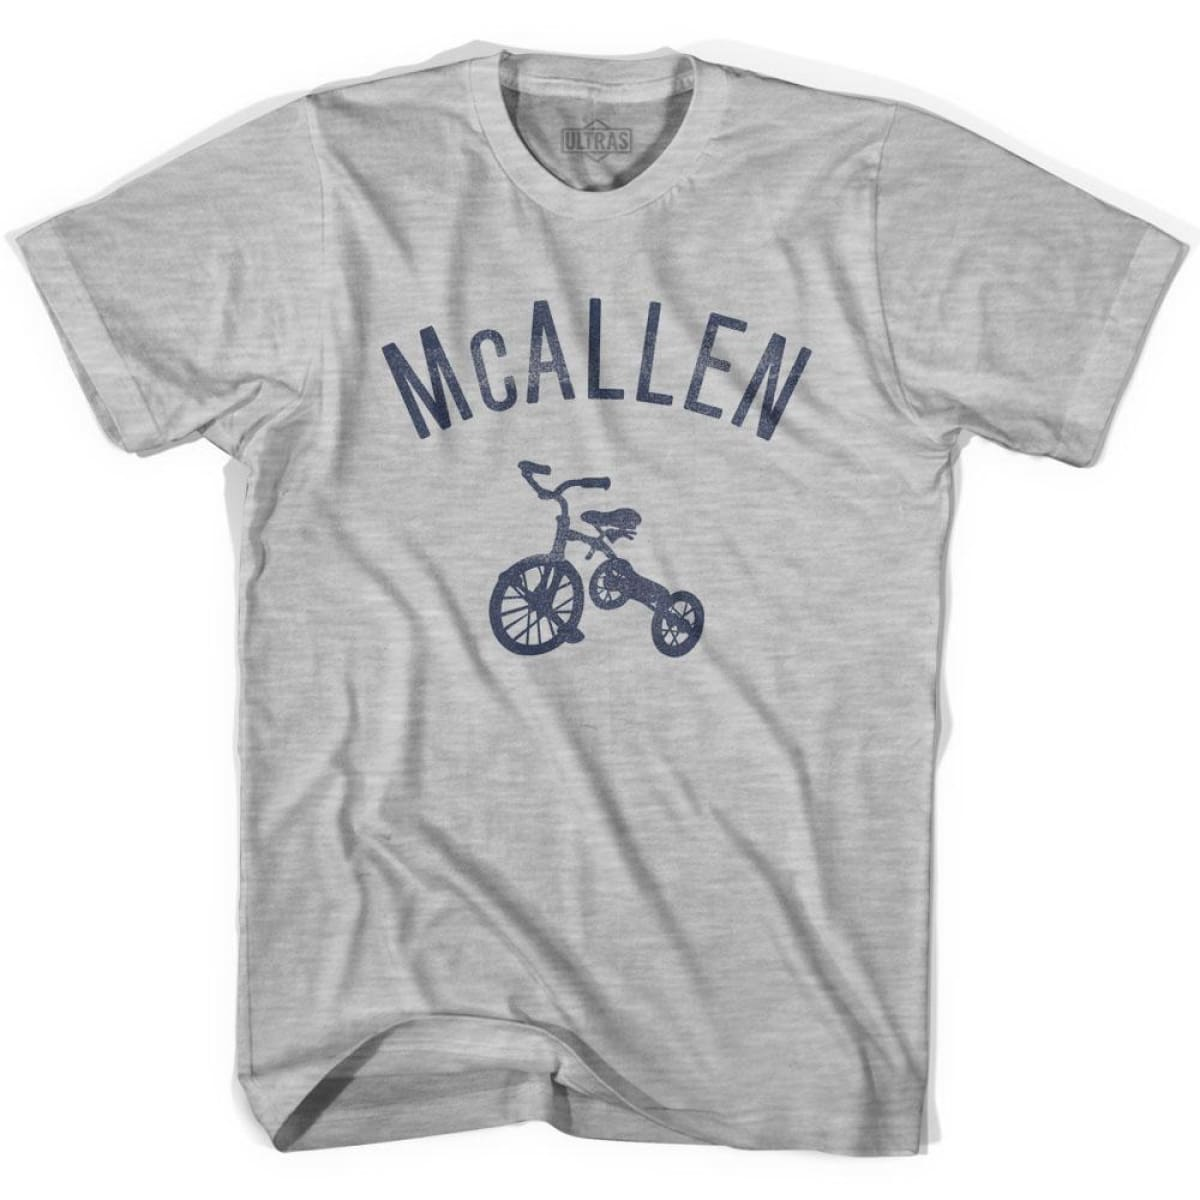 McAllen City Tricycle Youth Cotton T-shirt - Tricycle City